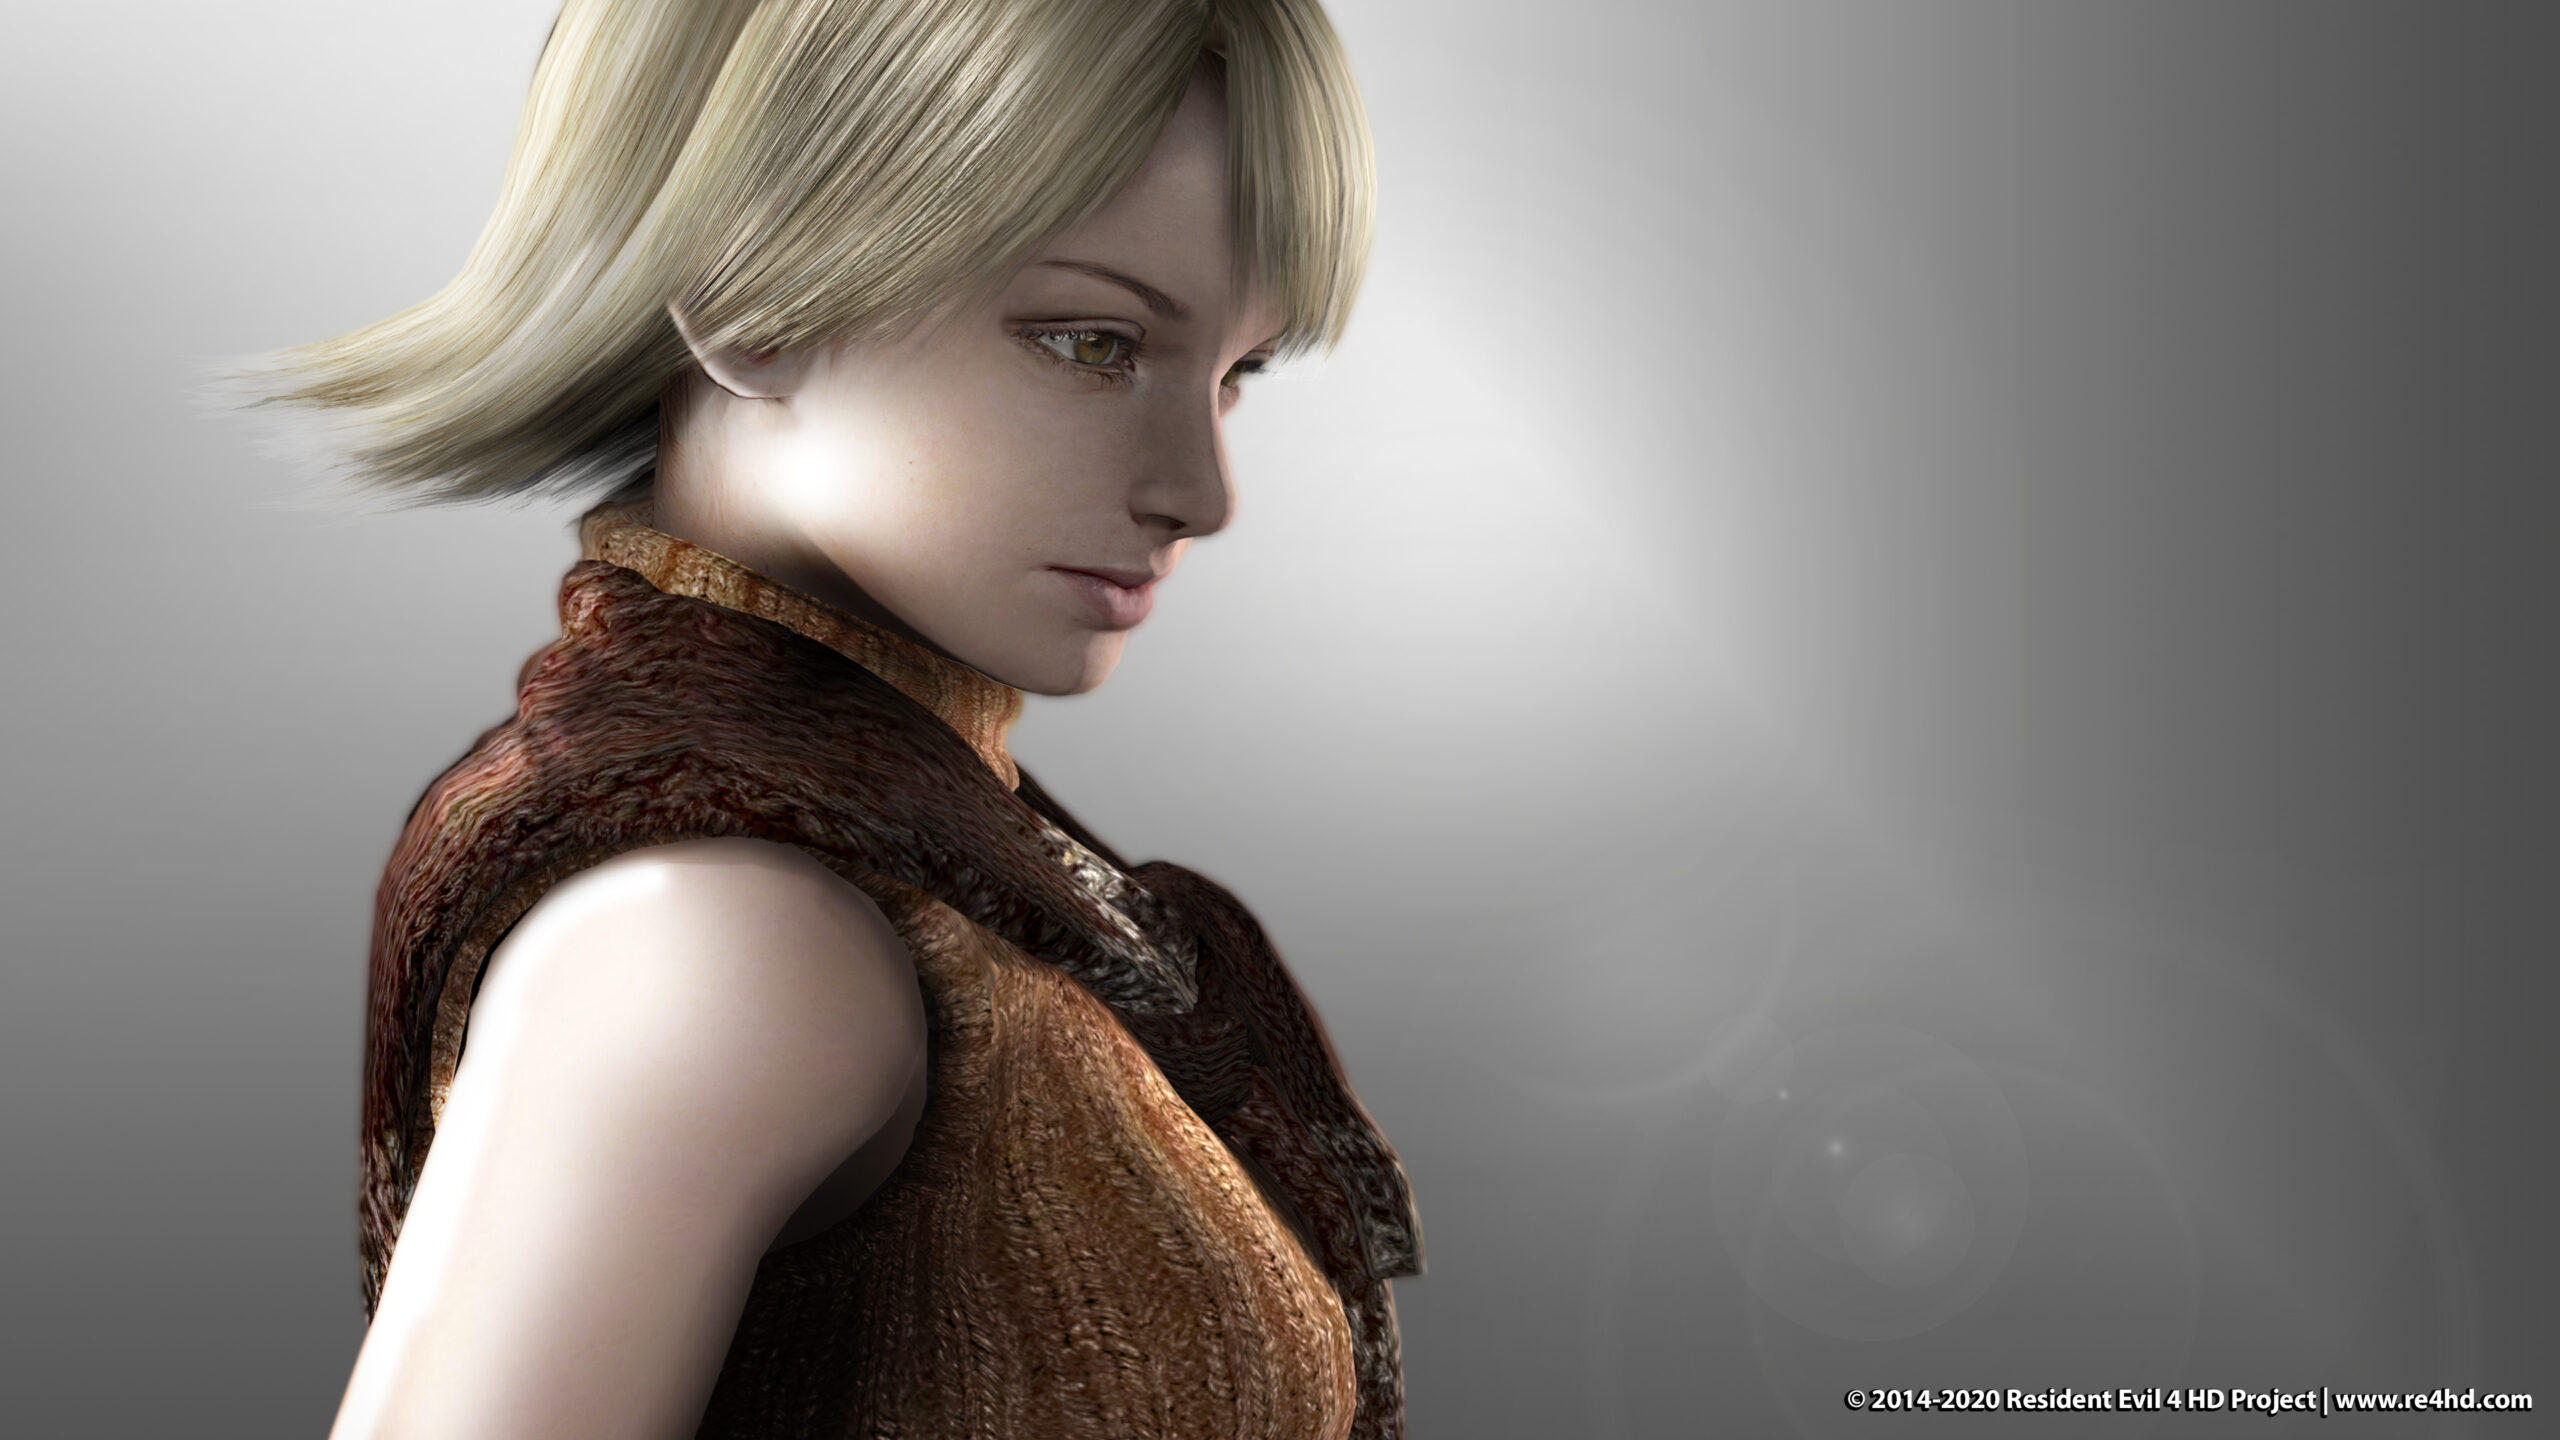 Wallpapers Wallpapers Resident Evil 4 Hd Project